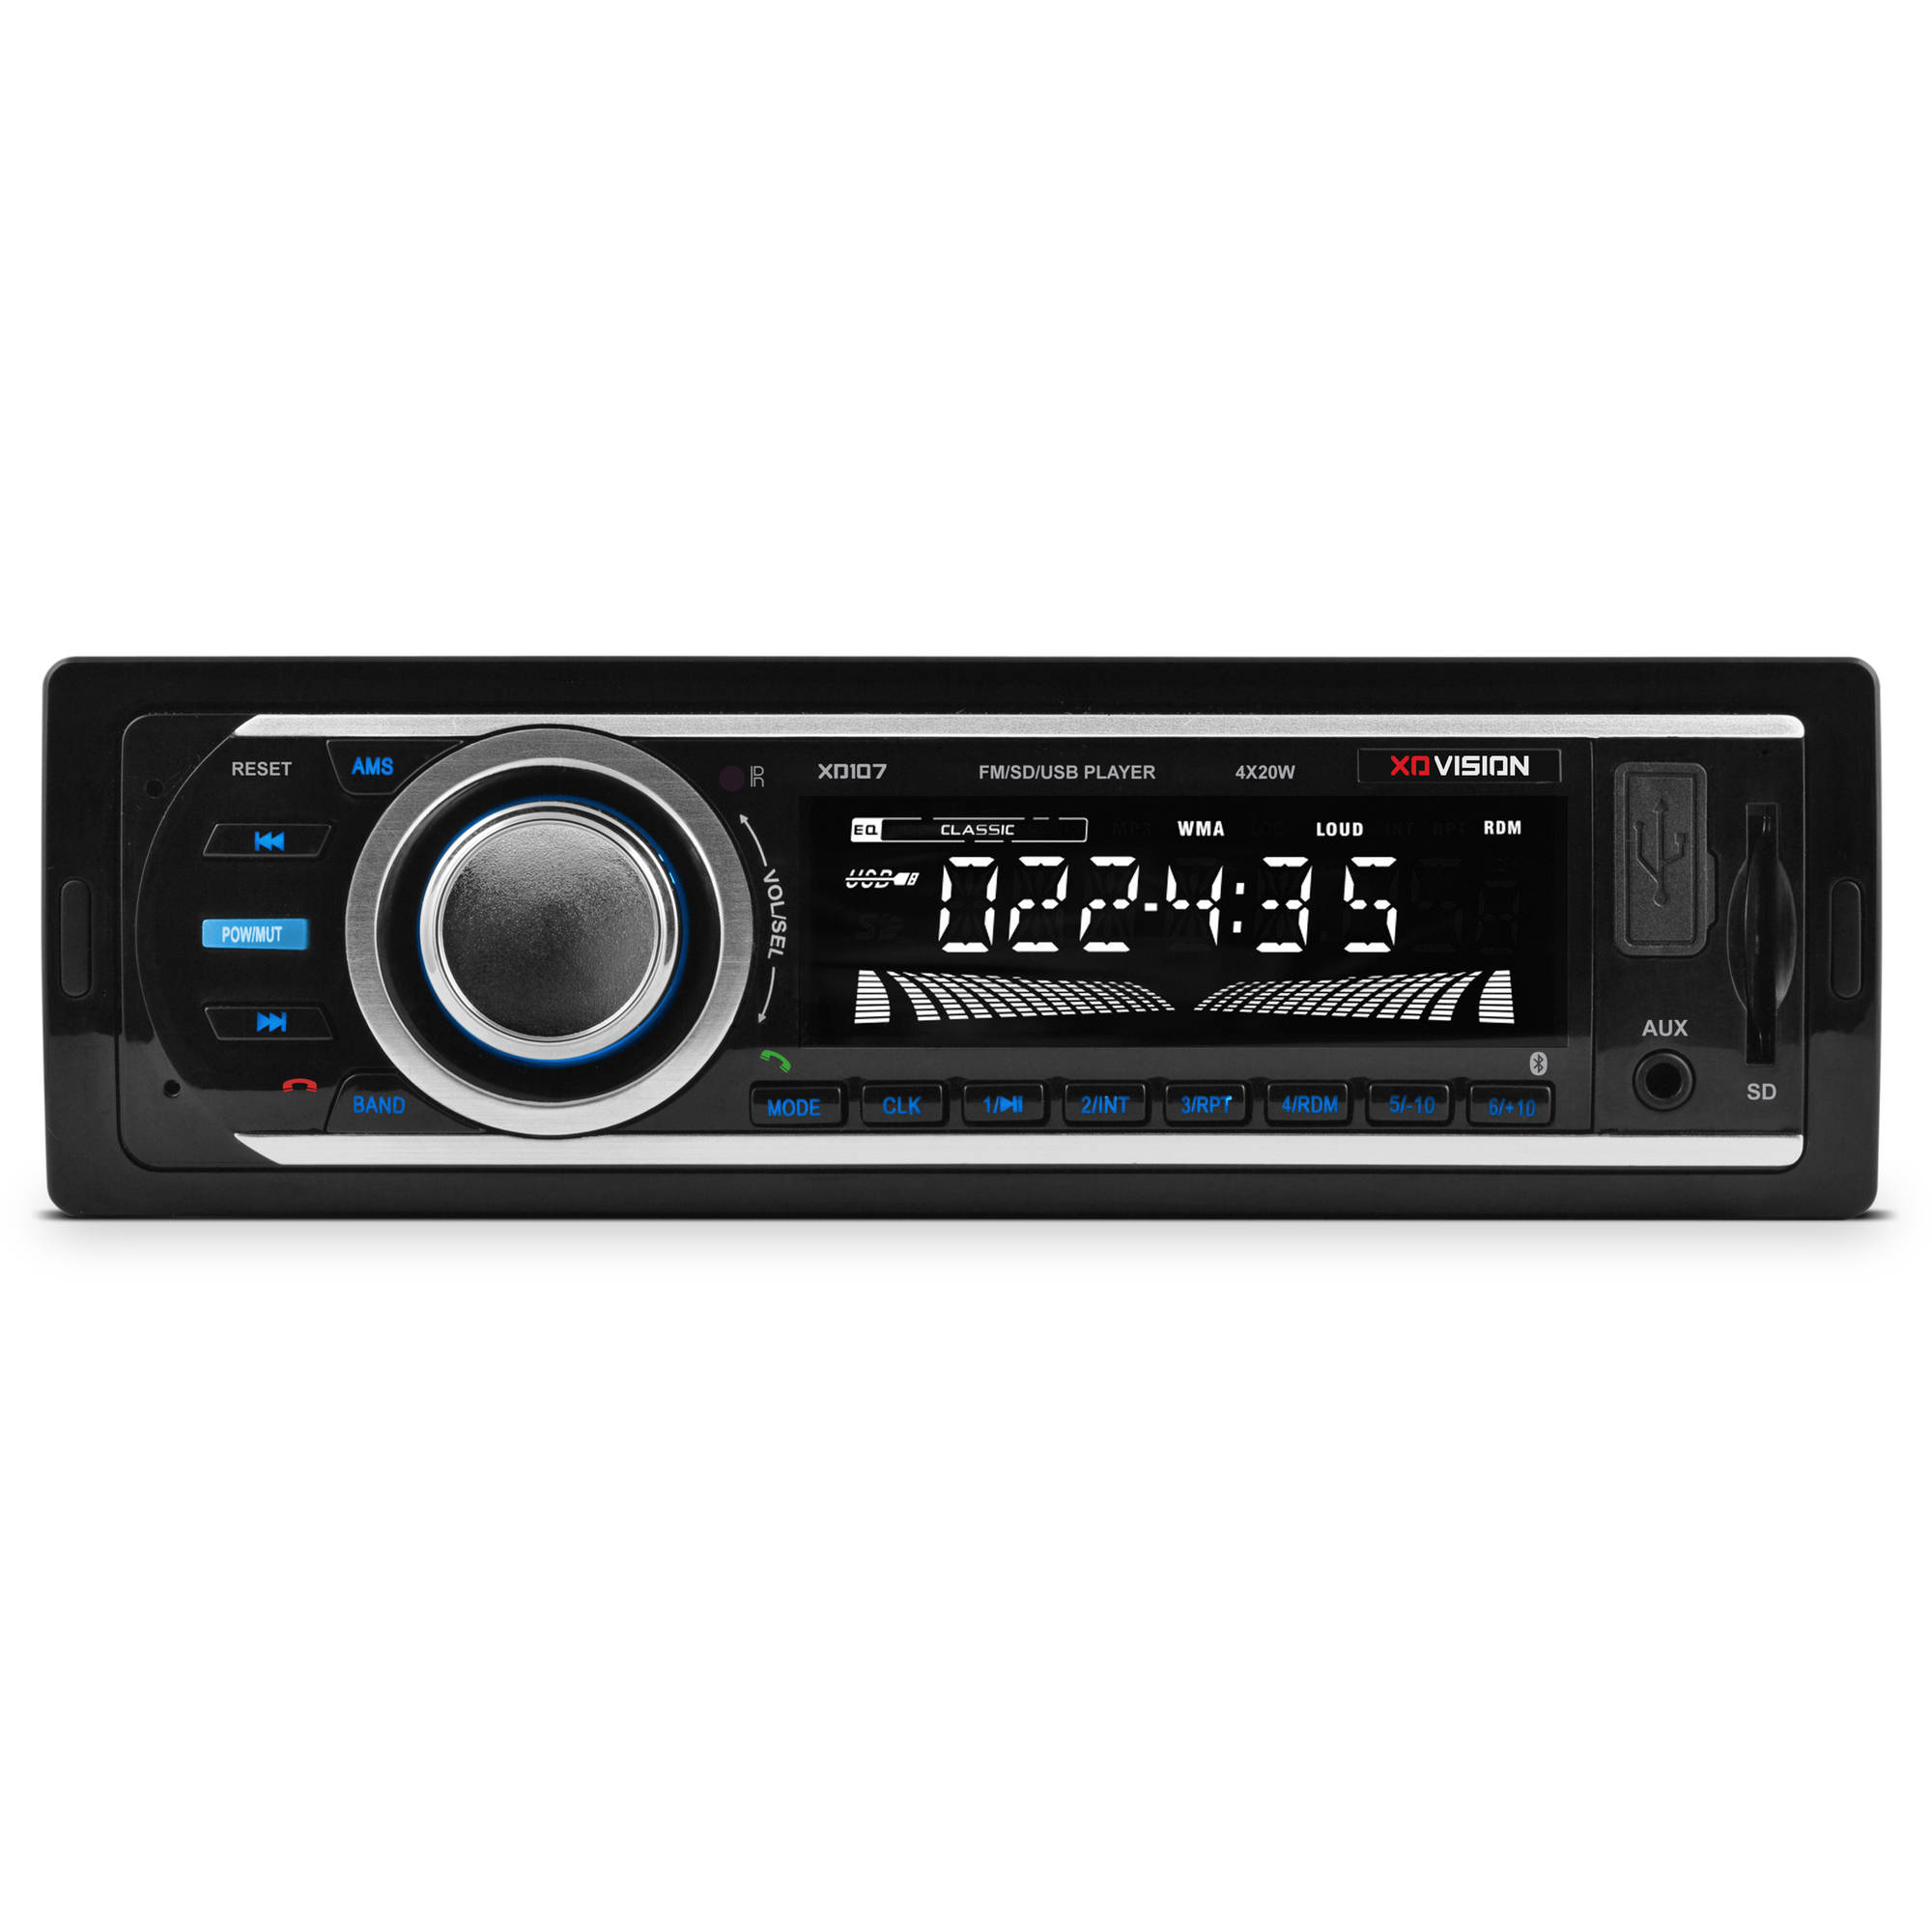 163d50e9 fab0 43d9 bc18 0a15c3289d3d_1.3778917bac34245adec16584bff5b2e5 xo vision xd107bt car stereo mp3 fm receiver with bluetooth best buy radio wire harness at metegol.co